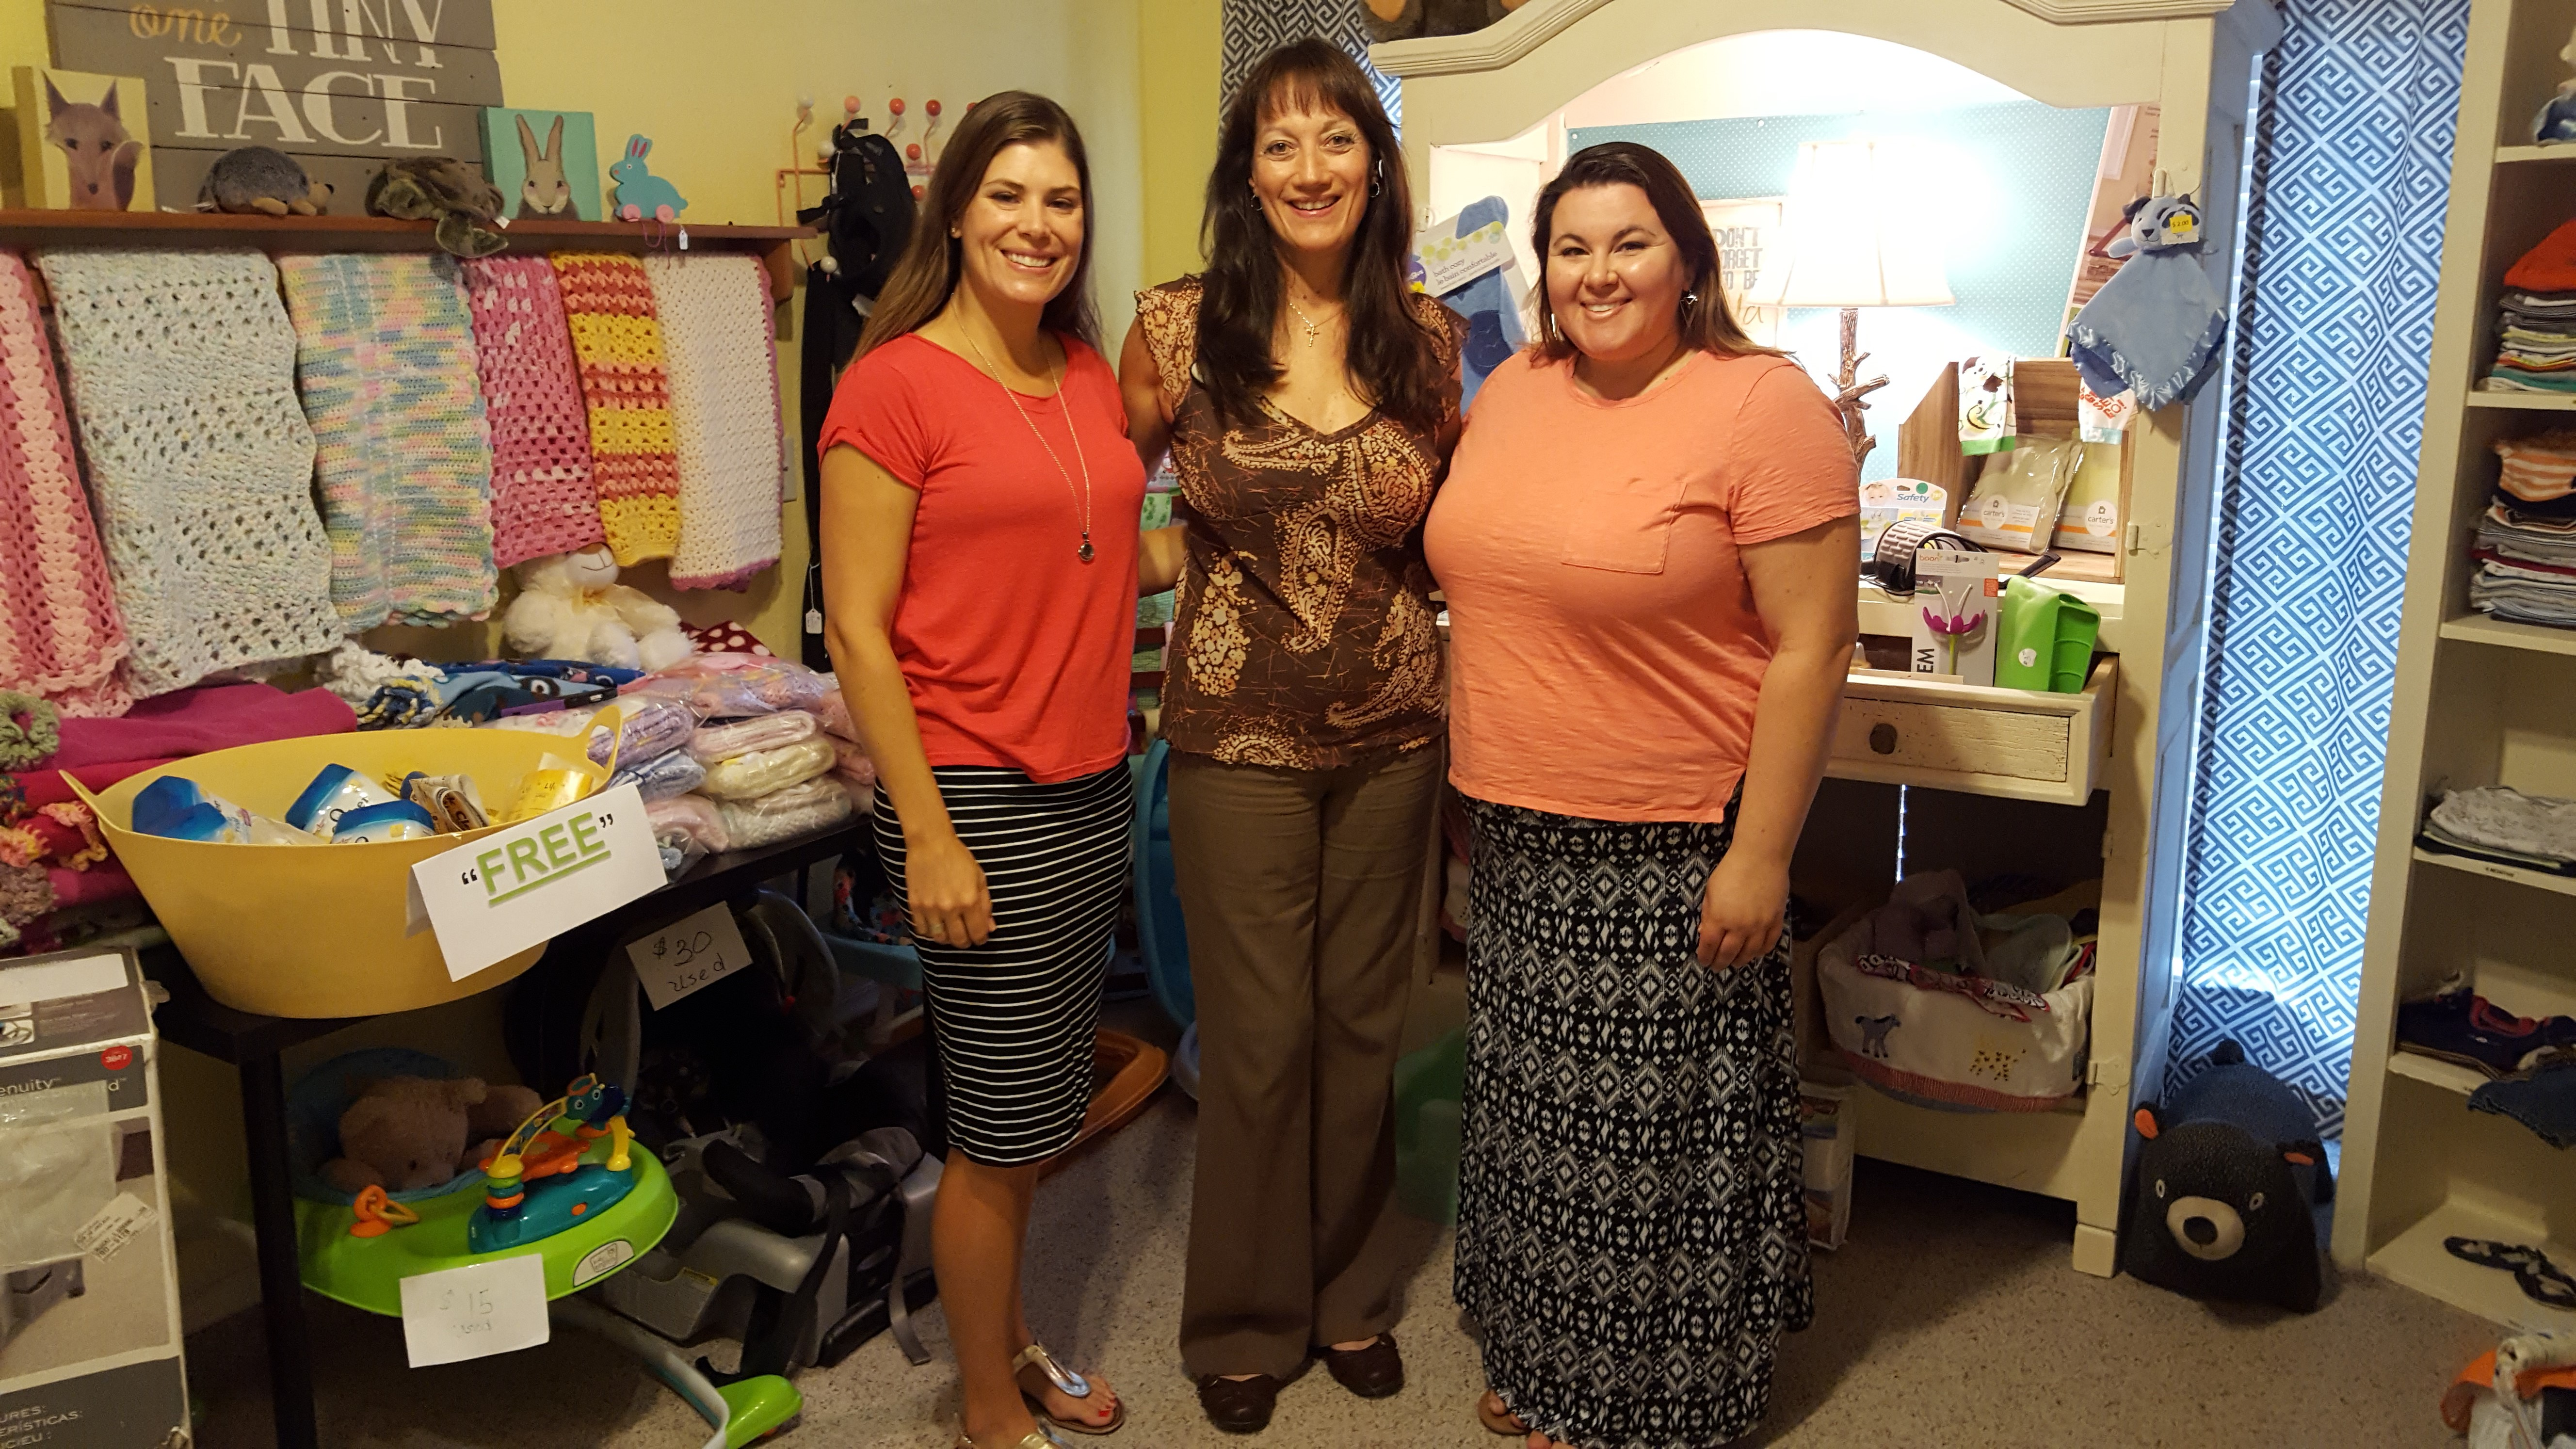 Pflugerville Pregnancy Resource Center: meet Brittany and Carrie